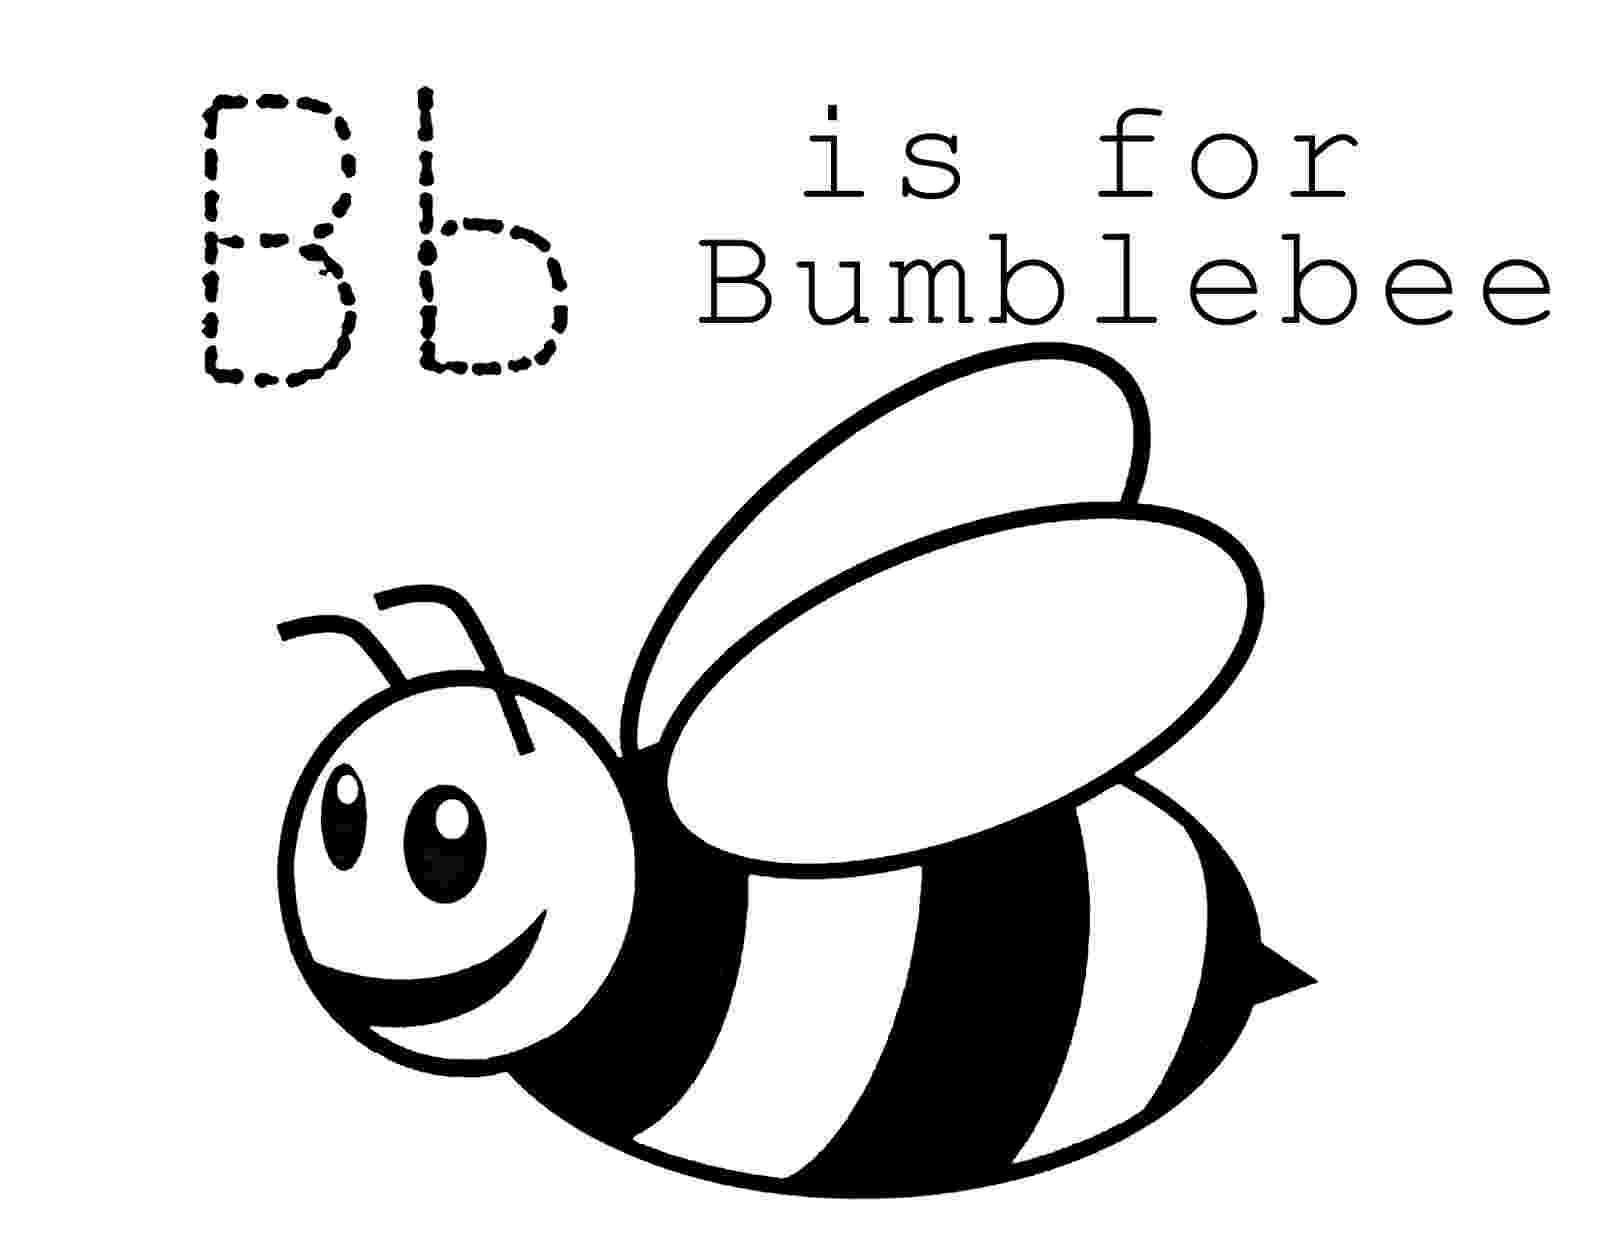 bumble bee coloring pages printable free printable bumble bee coloring pages for kids coloring bumble bee printable pages